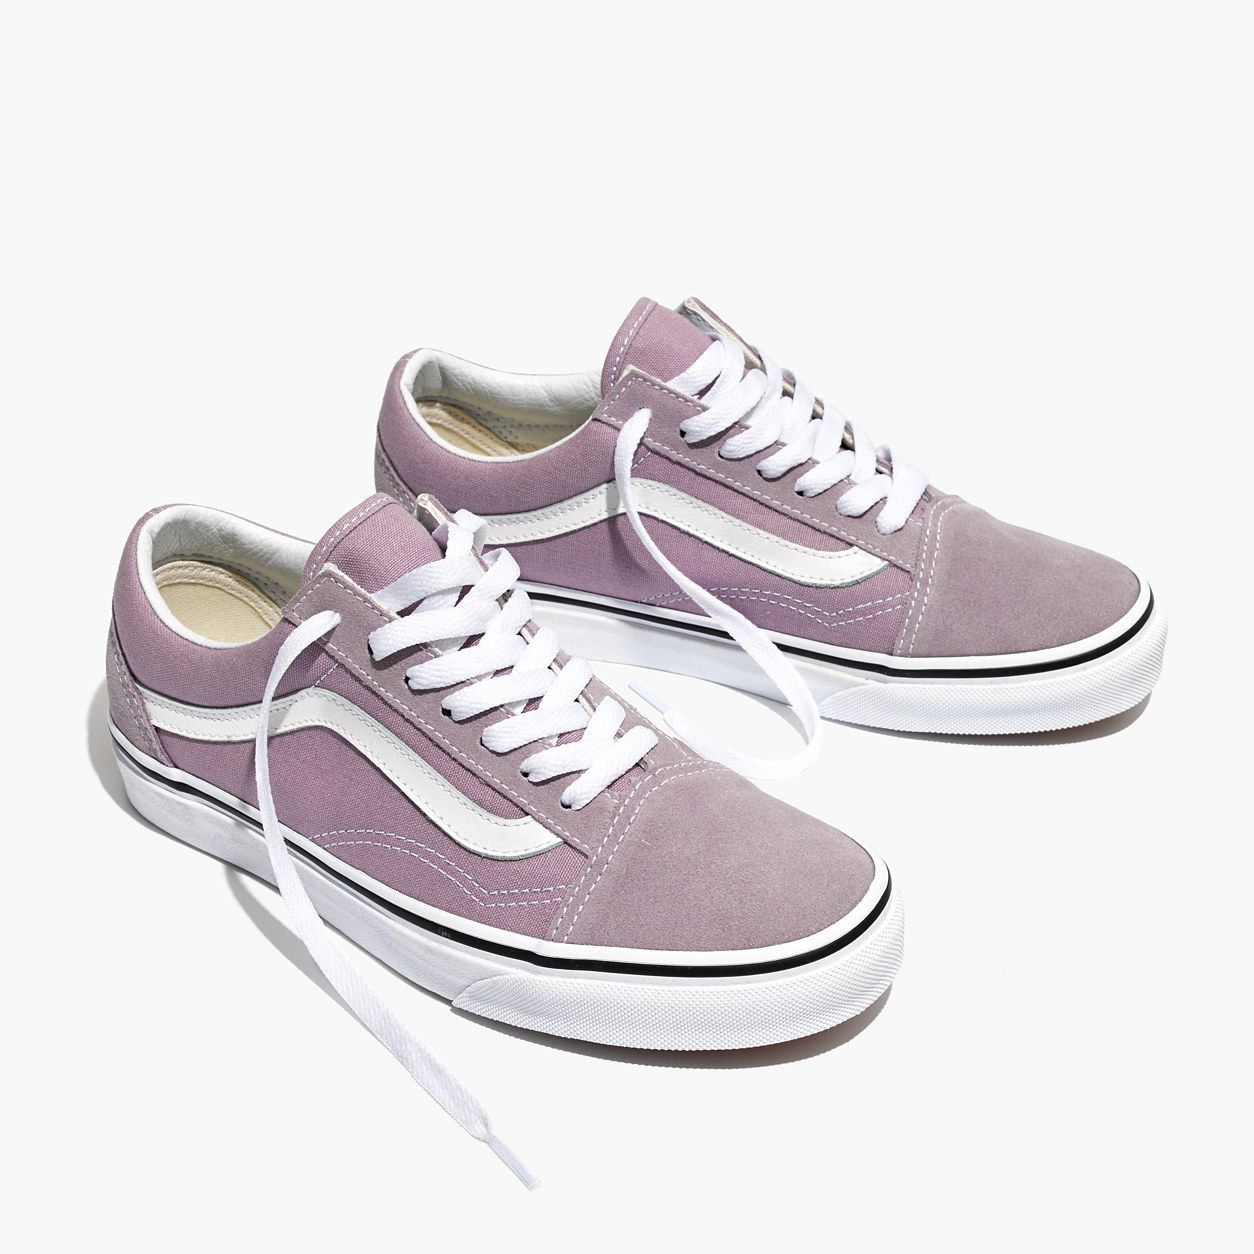 61690f3101 Madewell Womens Vans Unisex Old Skool Lace-Up Sneakers In Sea Fog ...